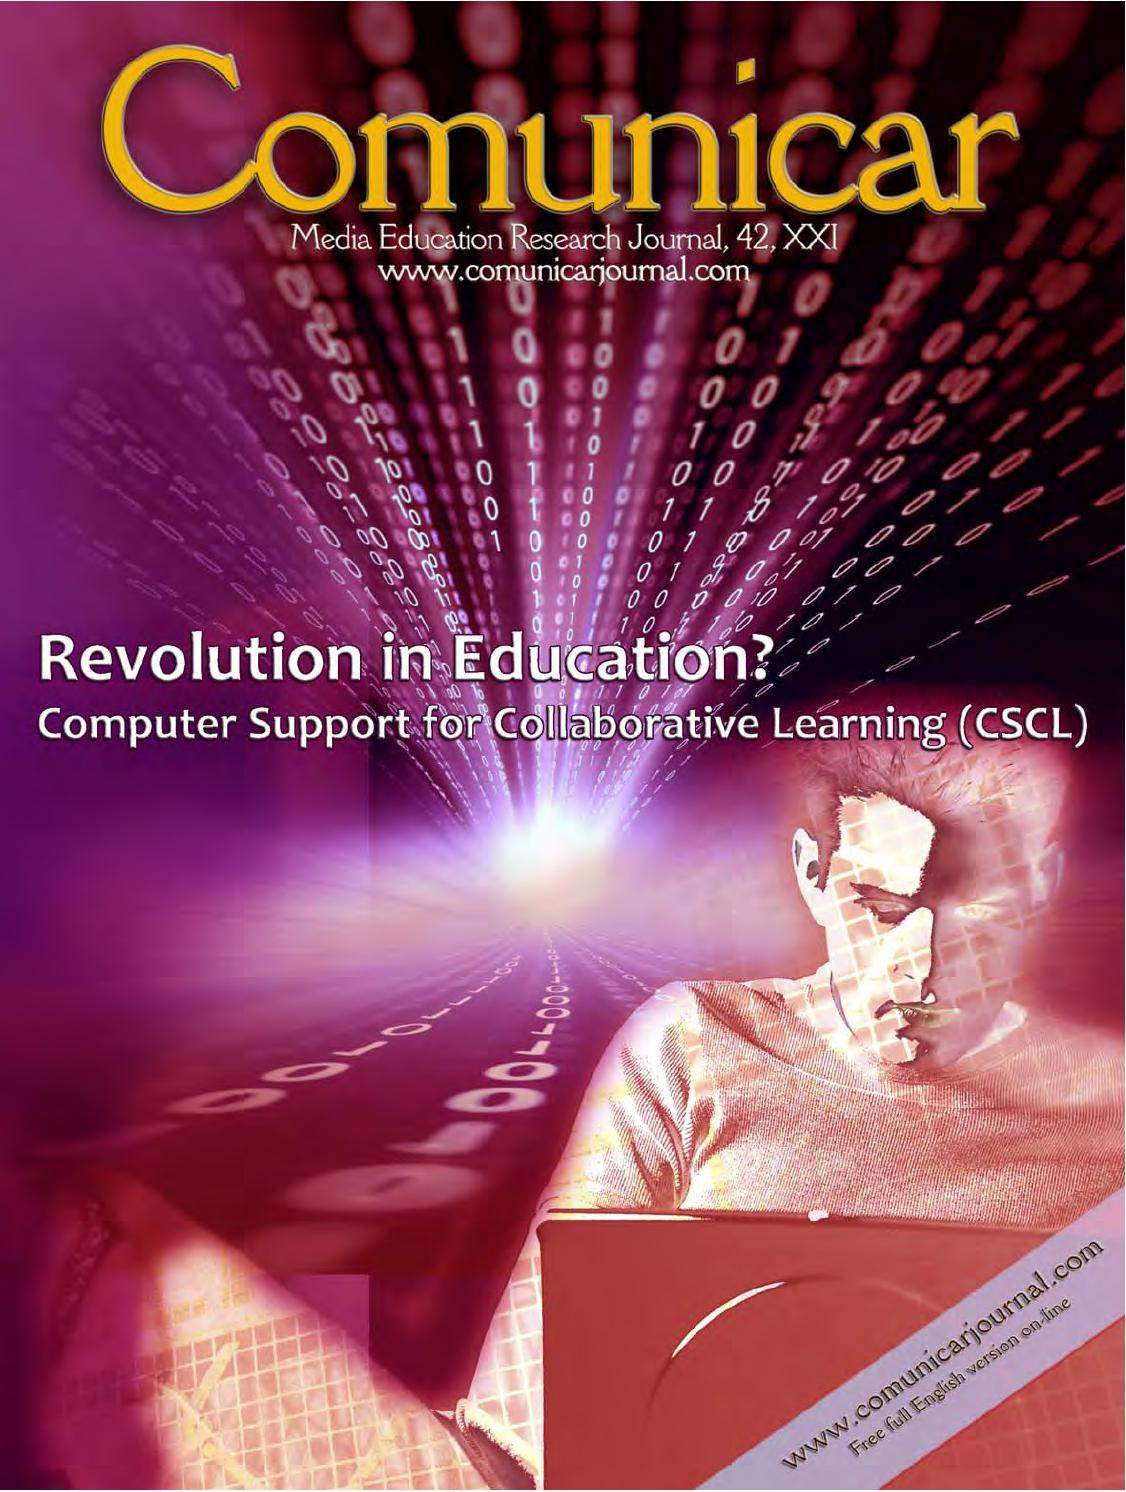 Revolution in Education  Computer Support for Collaborative Learning (CSCL)  by Revista Comunicar - issuu 0ef1c9f1de377